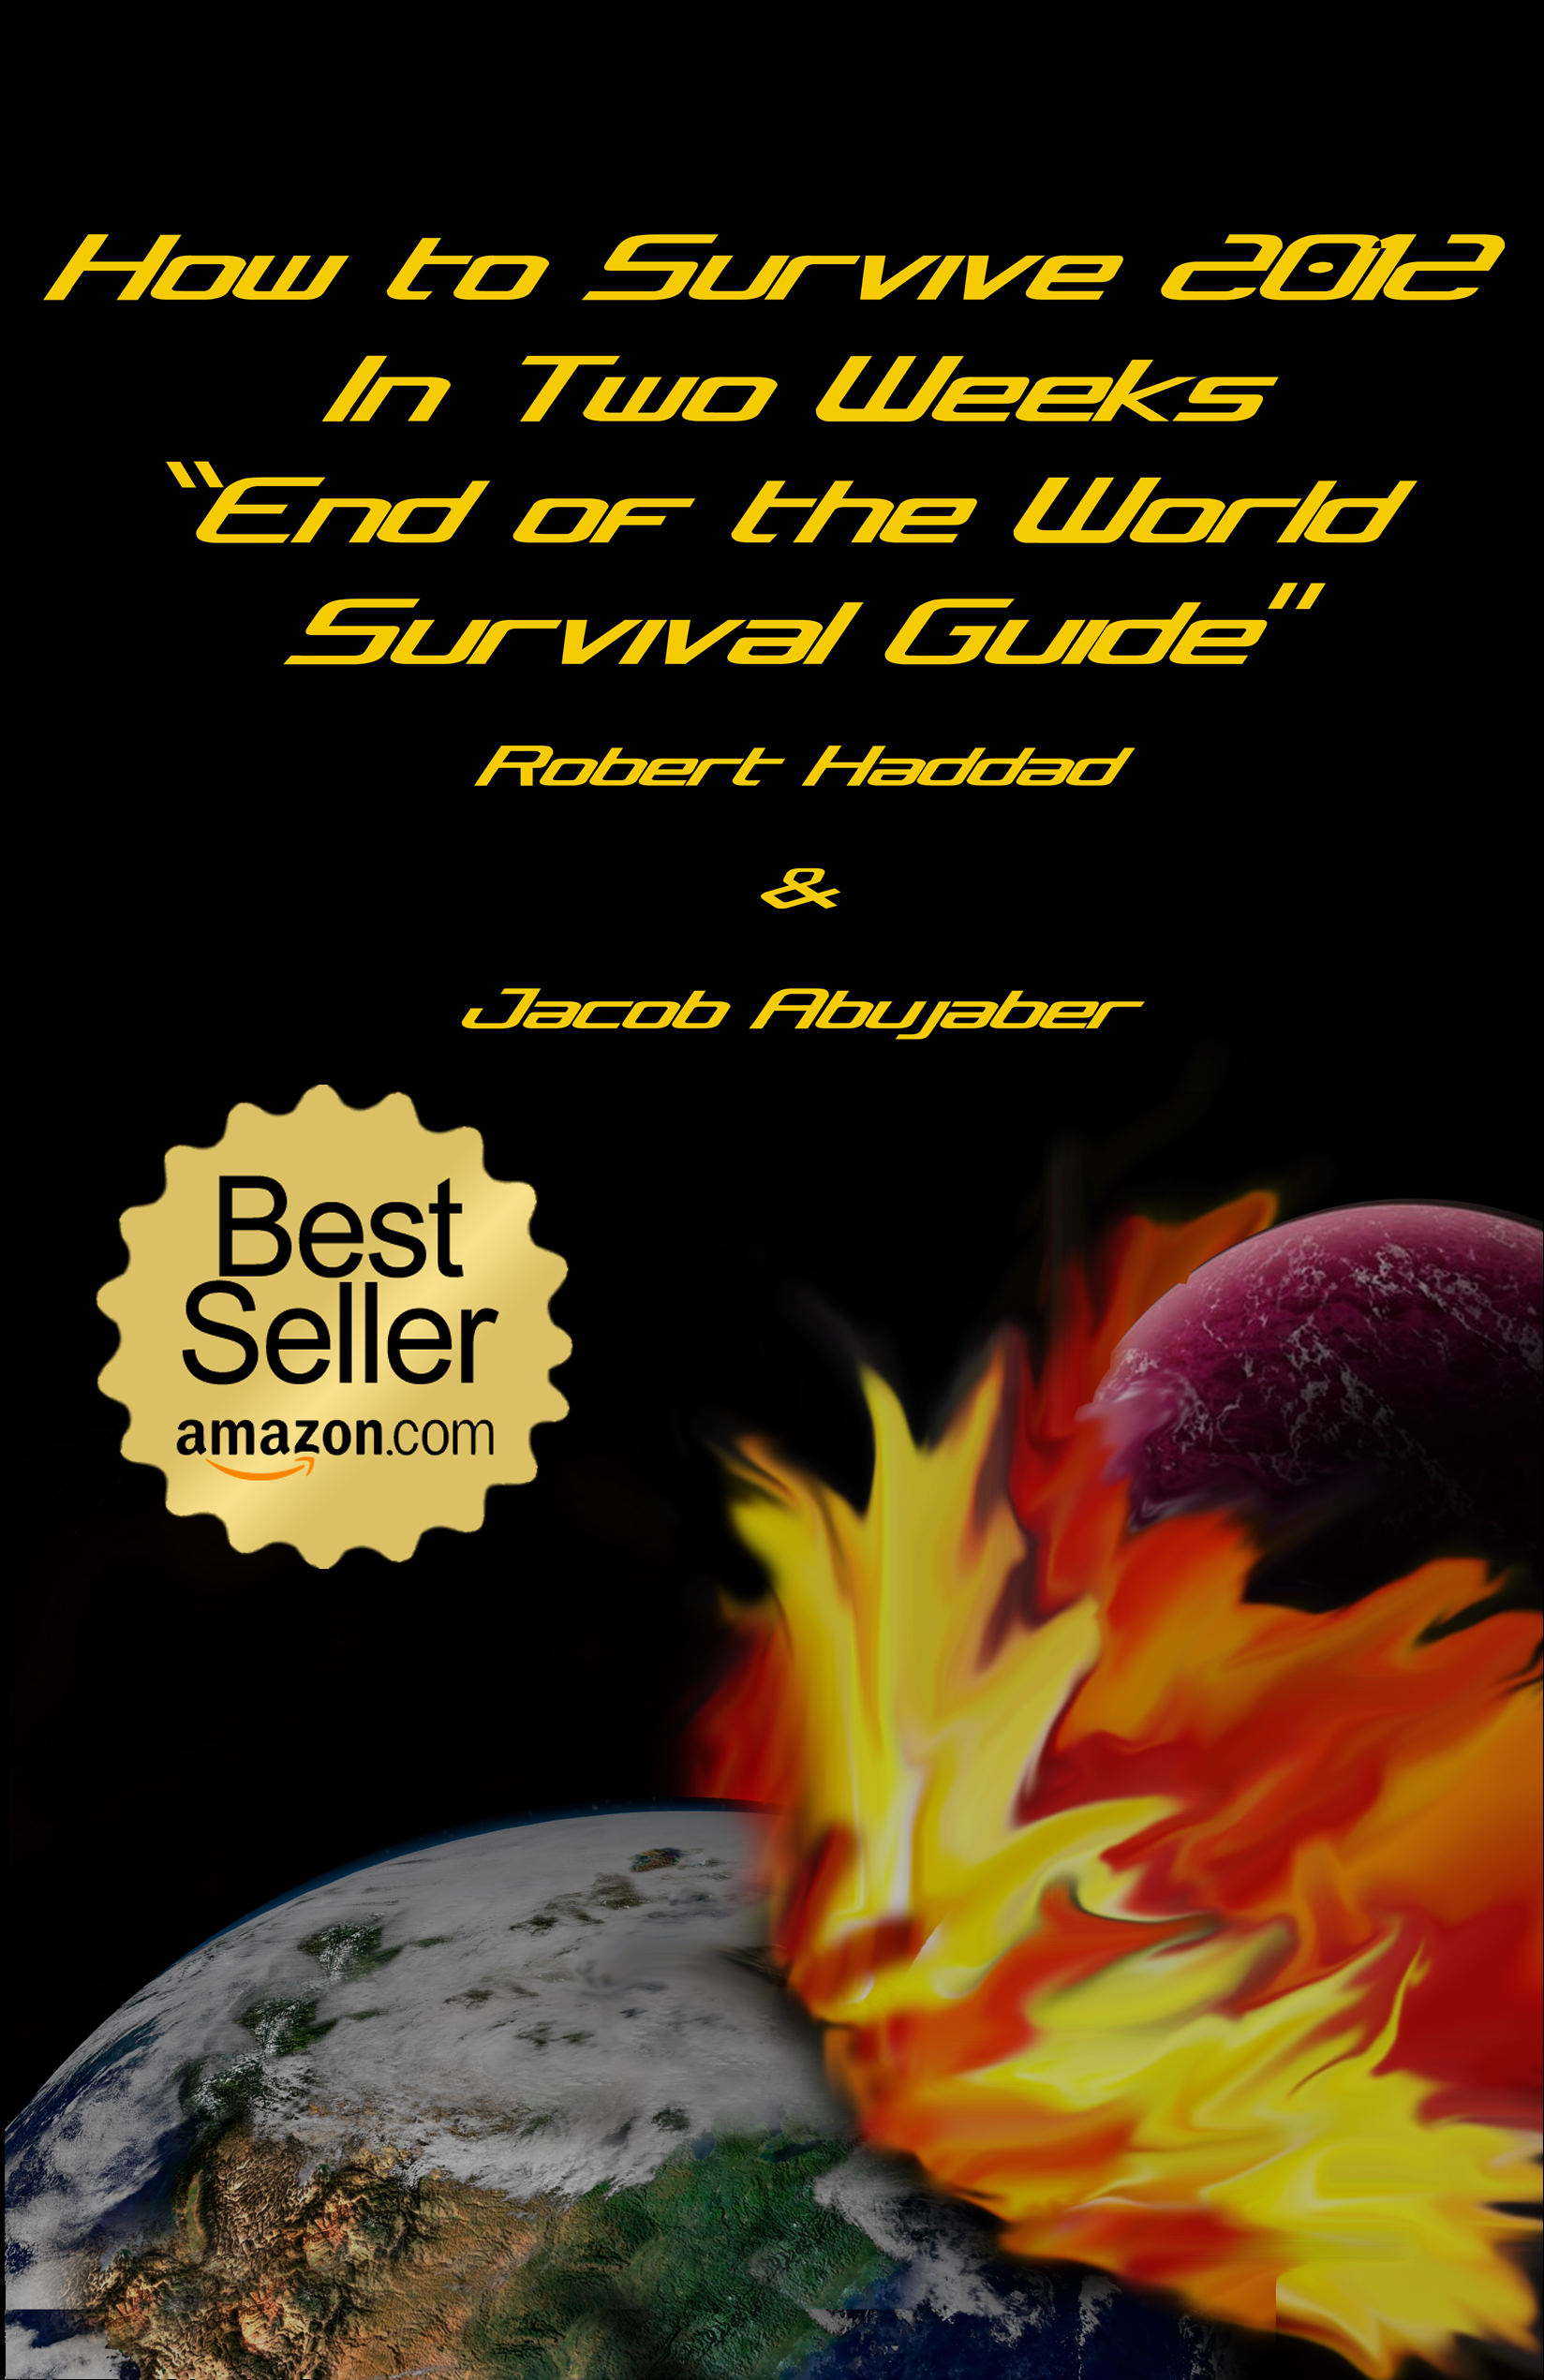 How to Survive 2012  In Two Weeks: End of the World Survival Guide